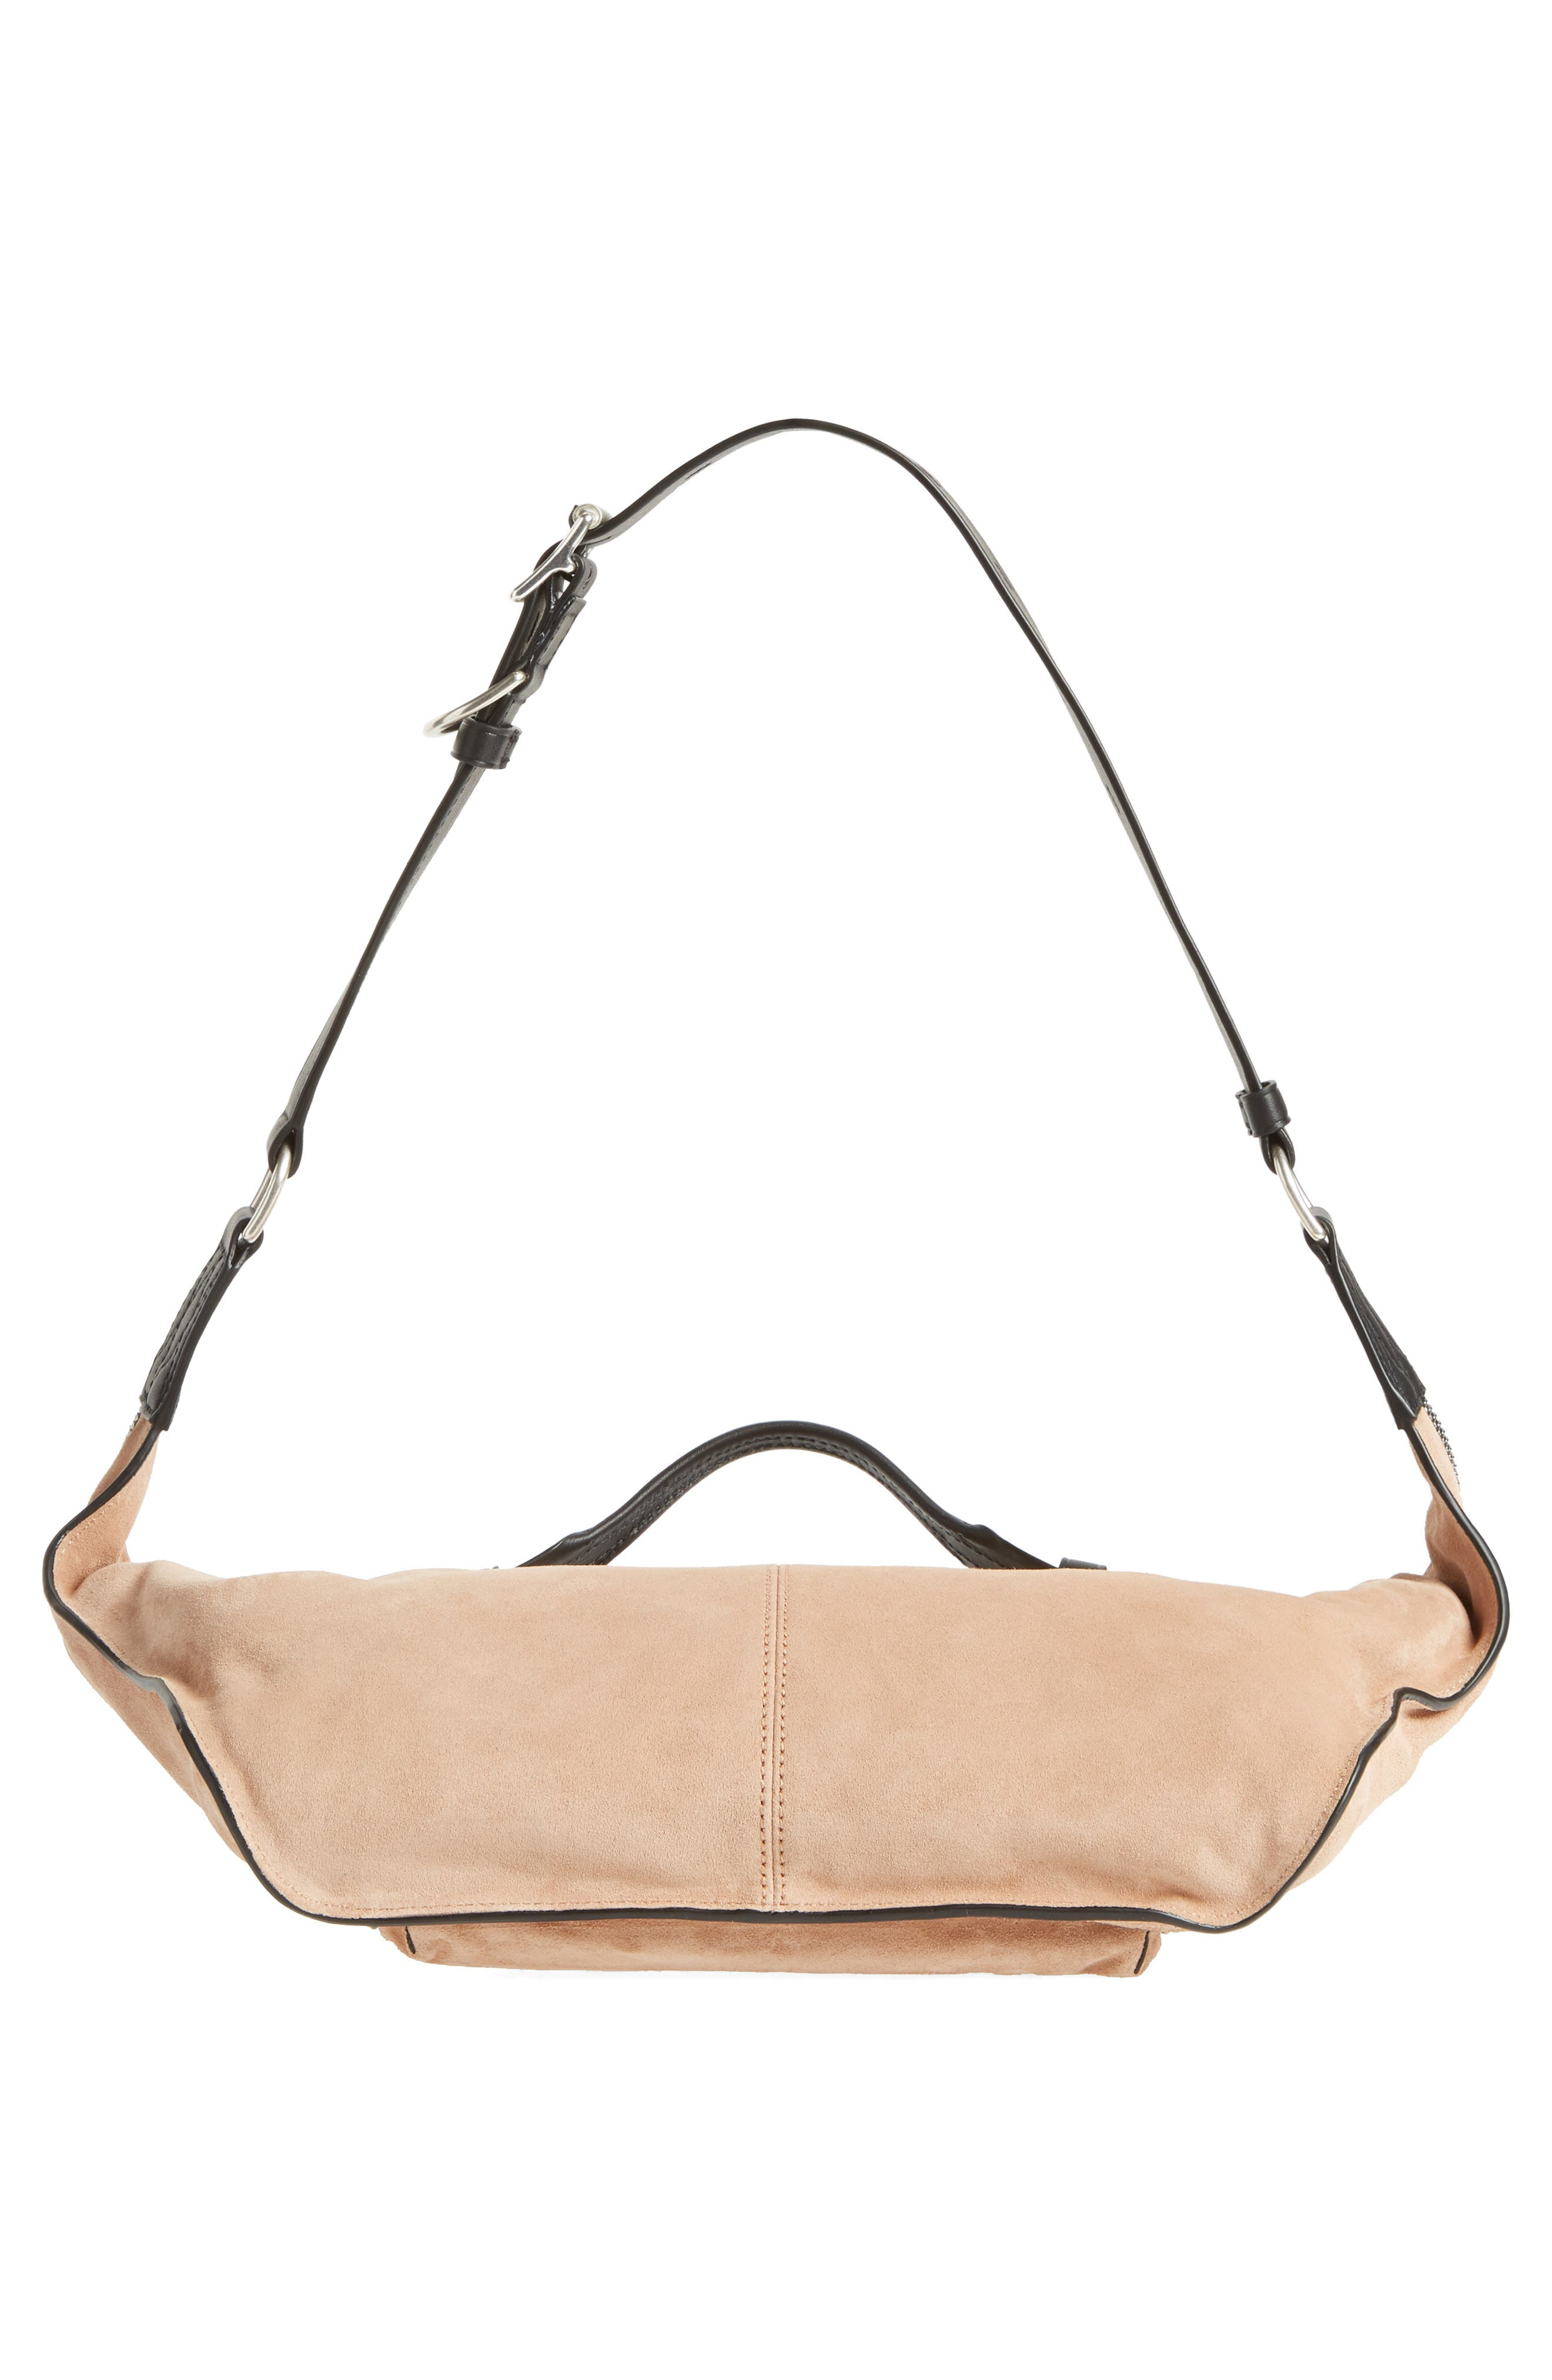 Elliot Leather Fanny Pack,                             Alternate thumbnail 7, color,                             Nude Suede